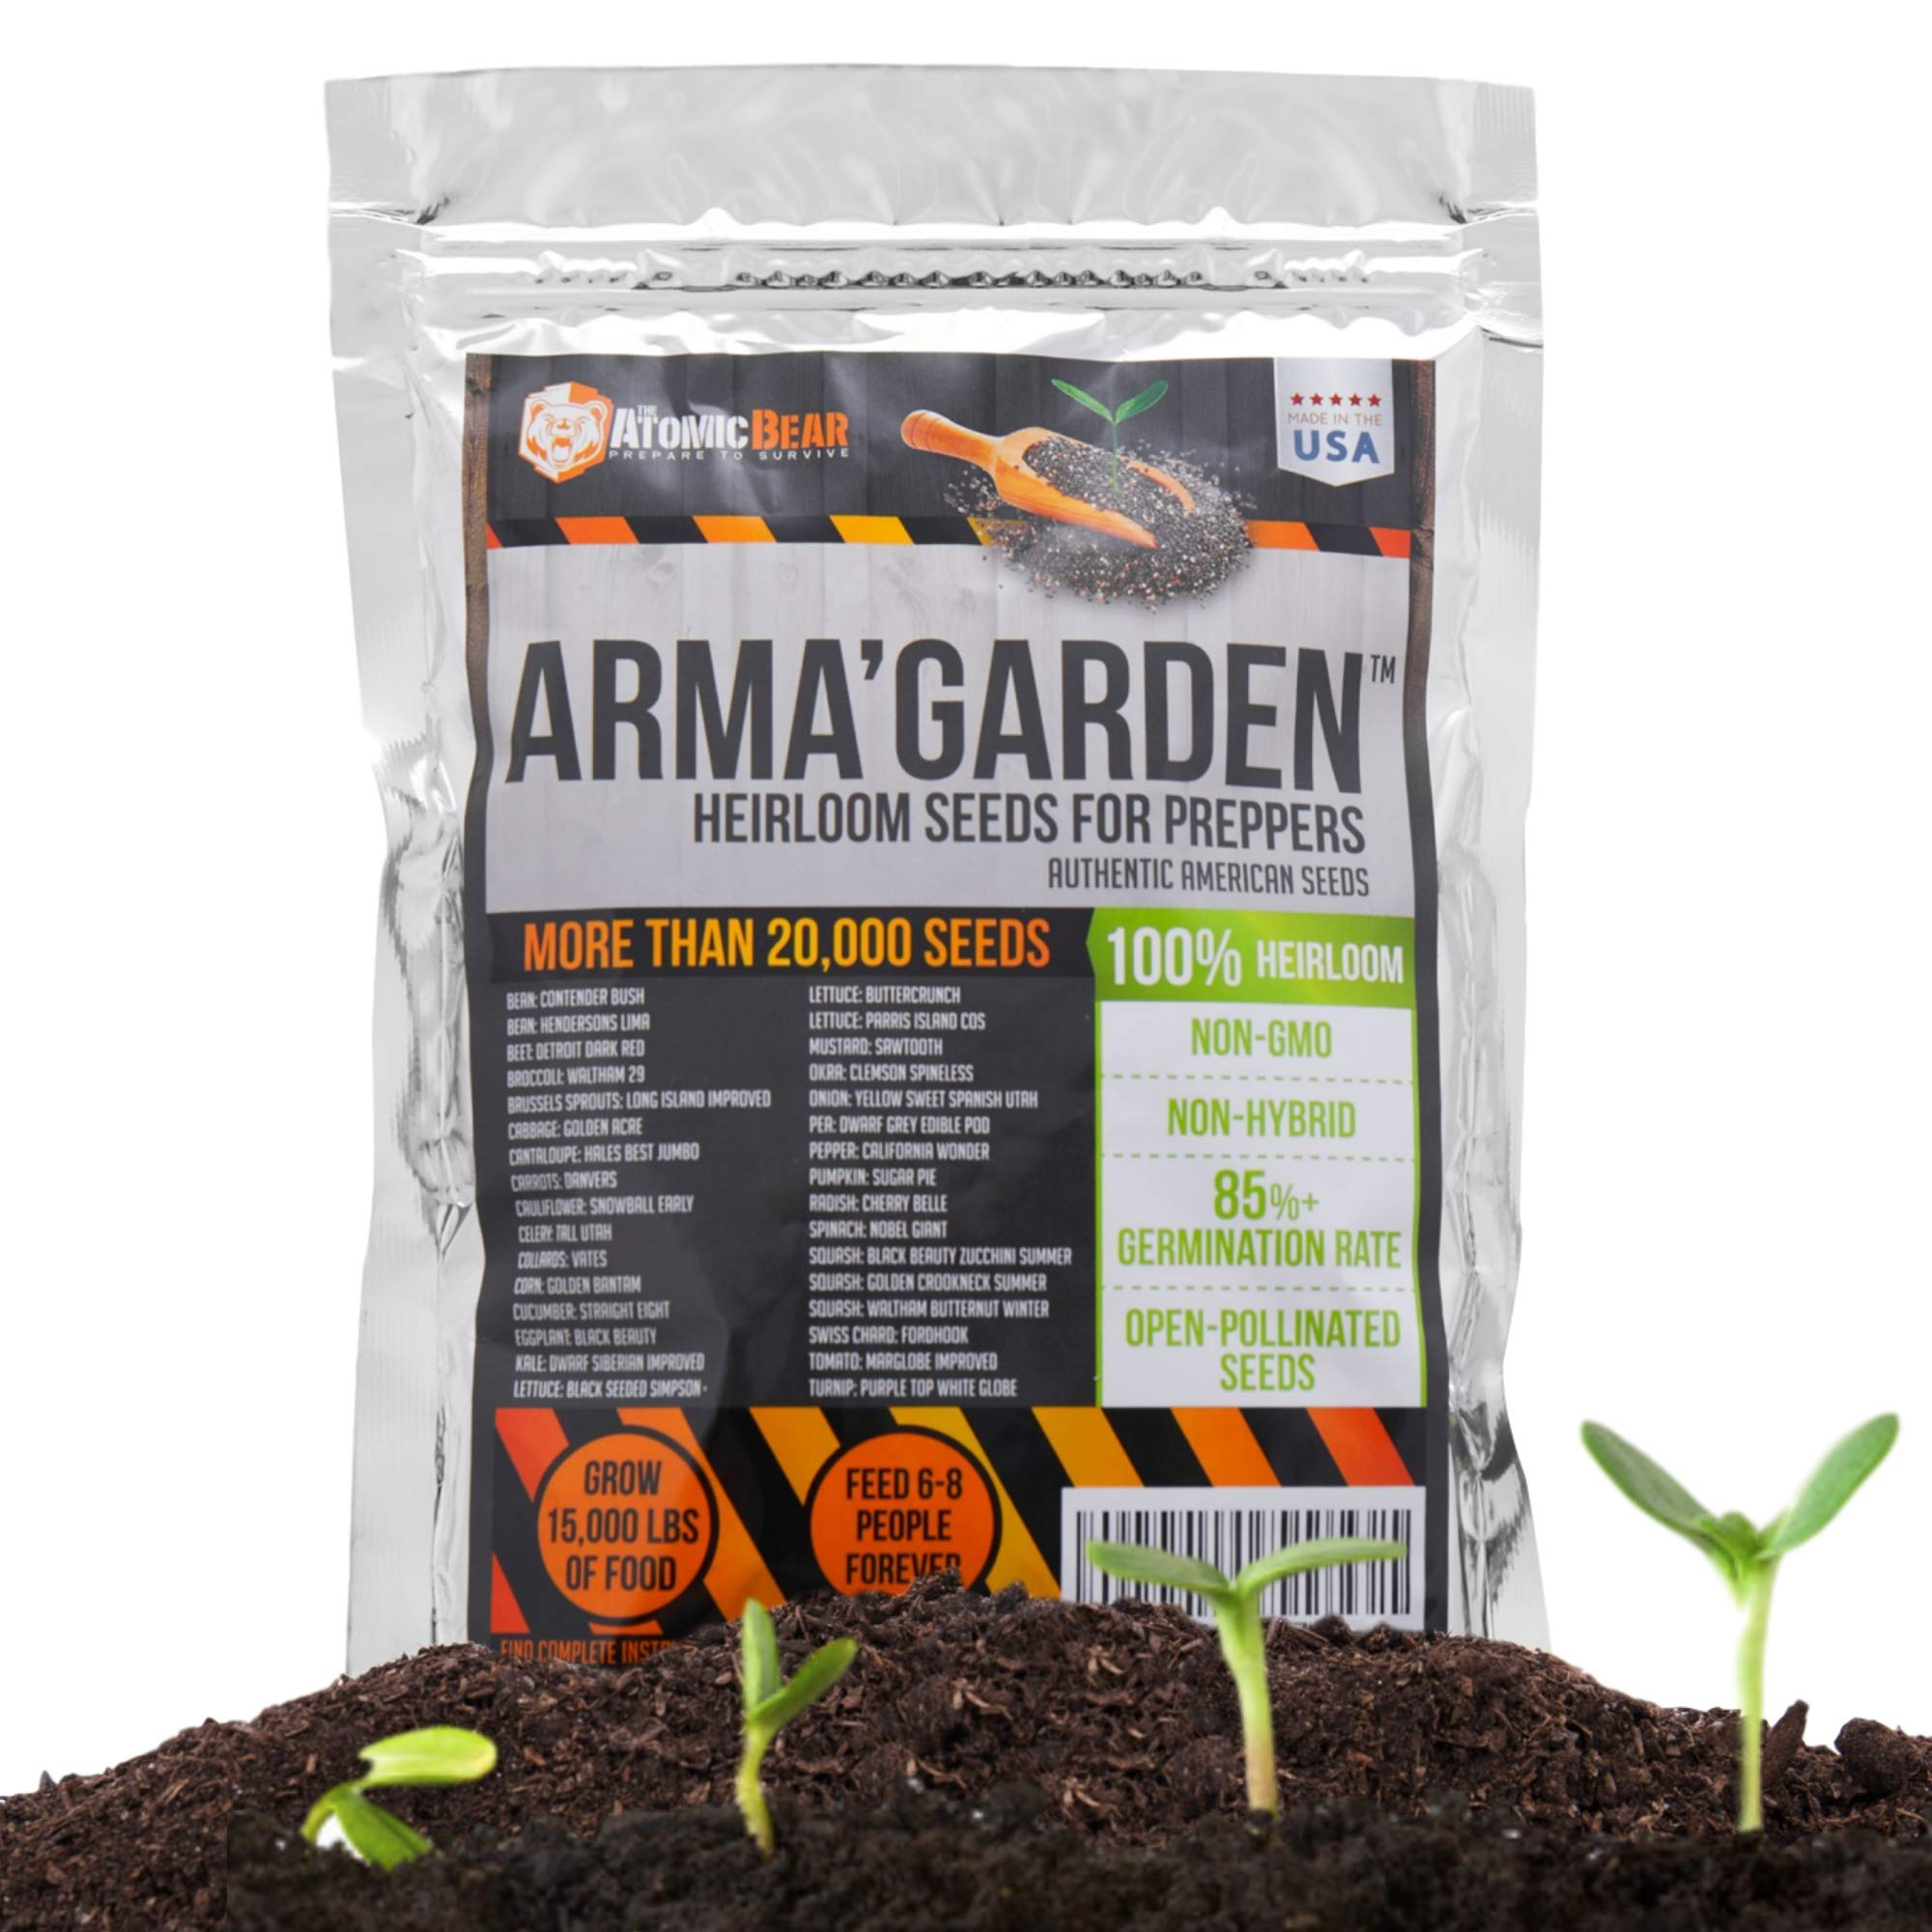 Atomic Bear Heirloom Vegetable Seeds - Non-GMO, Non-Hybrid, Open Pollinated Seeds to Grow 32 Variety of America Heritage Vegetables - Essential Survival Food for Off-the-Grid Preppers Garden by Atomic Bear